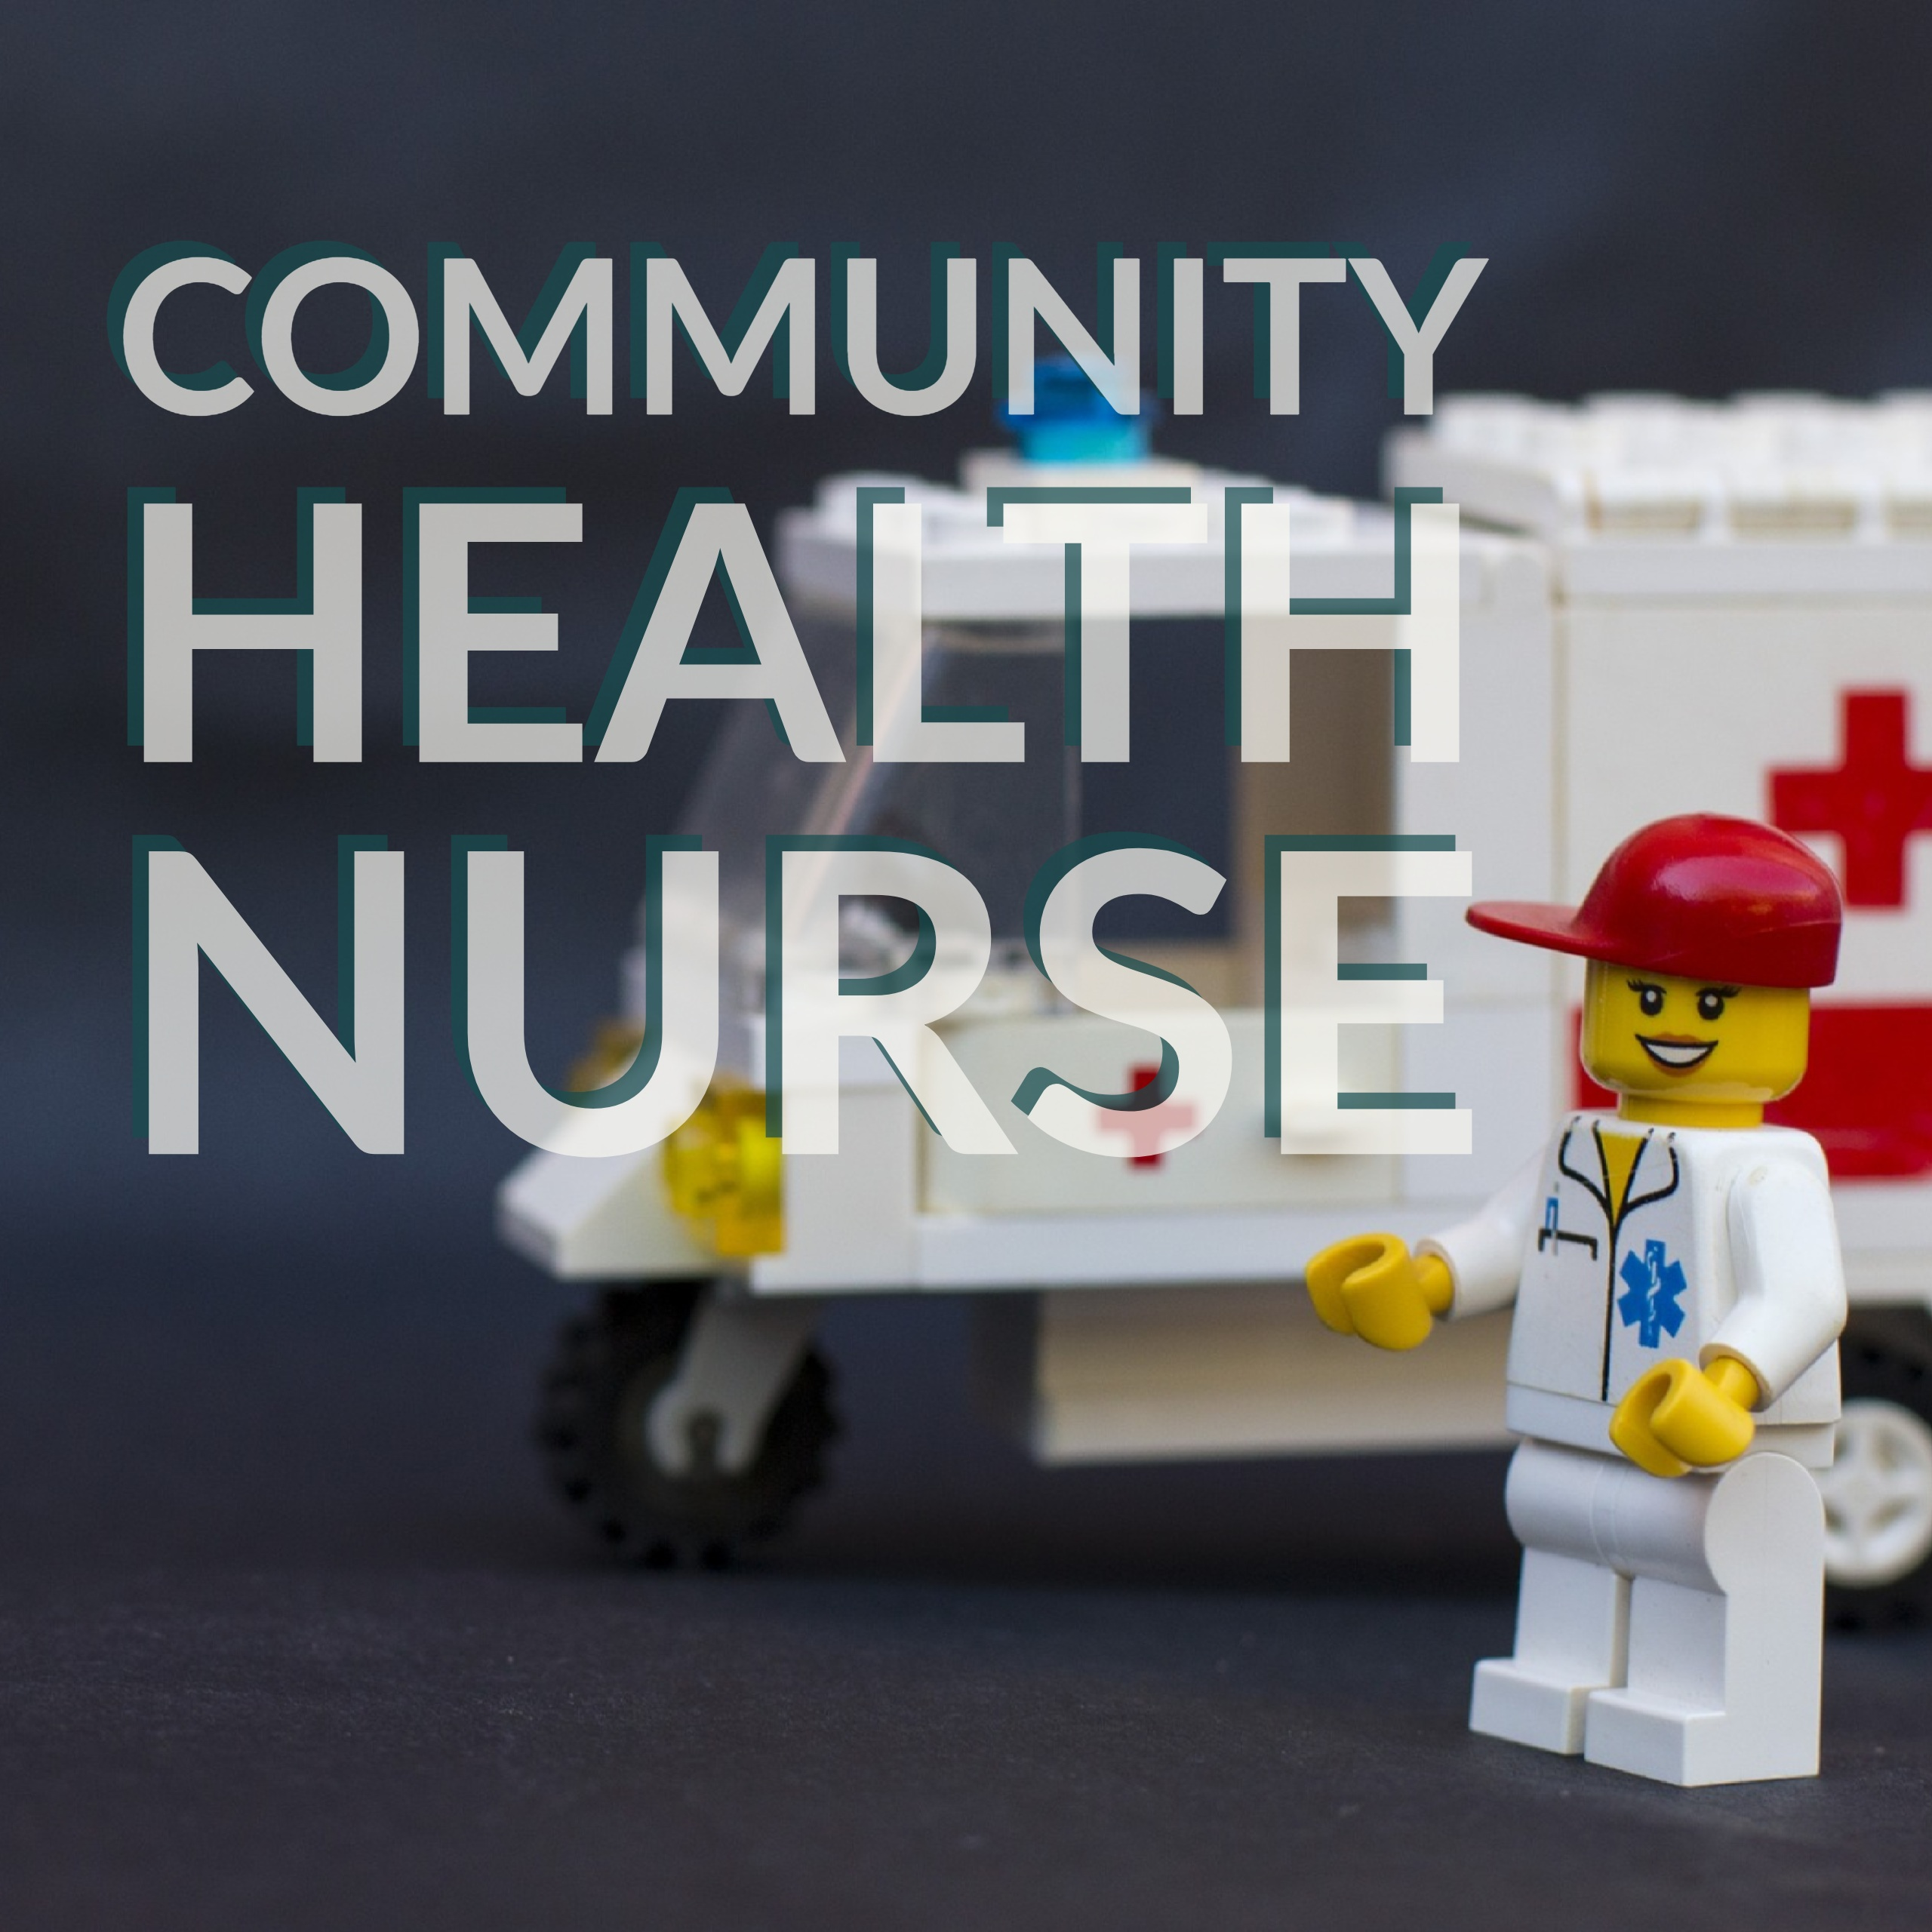 From the Community Health Nurse